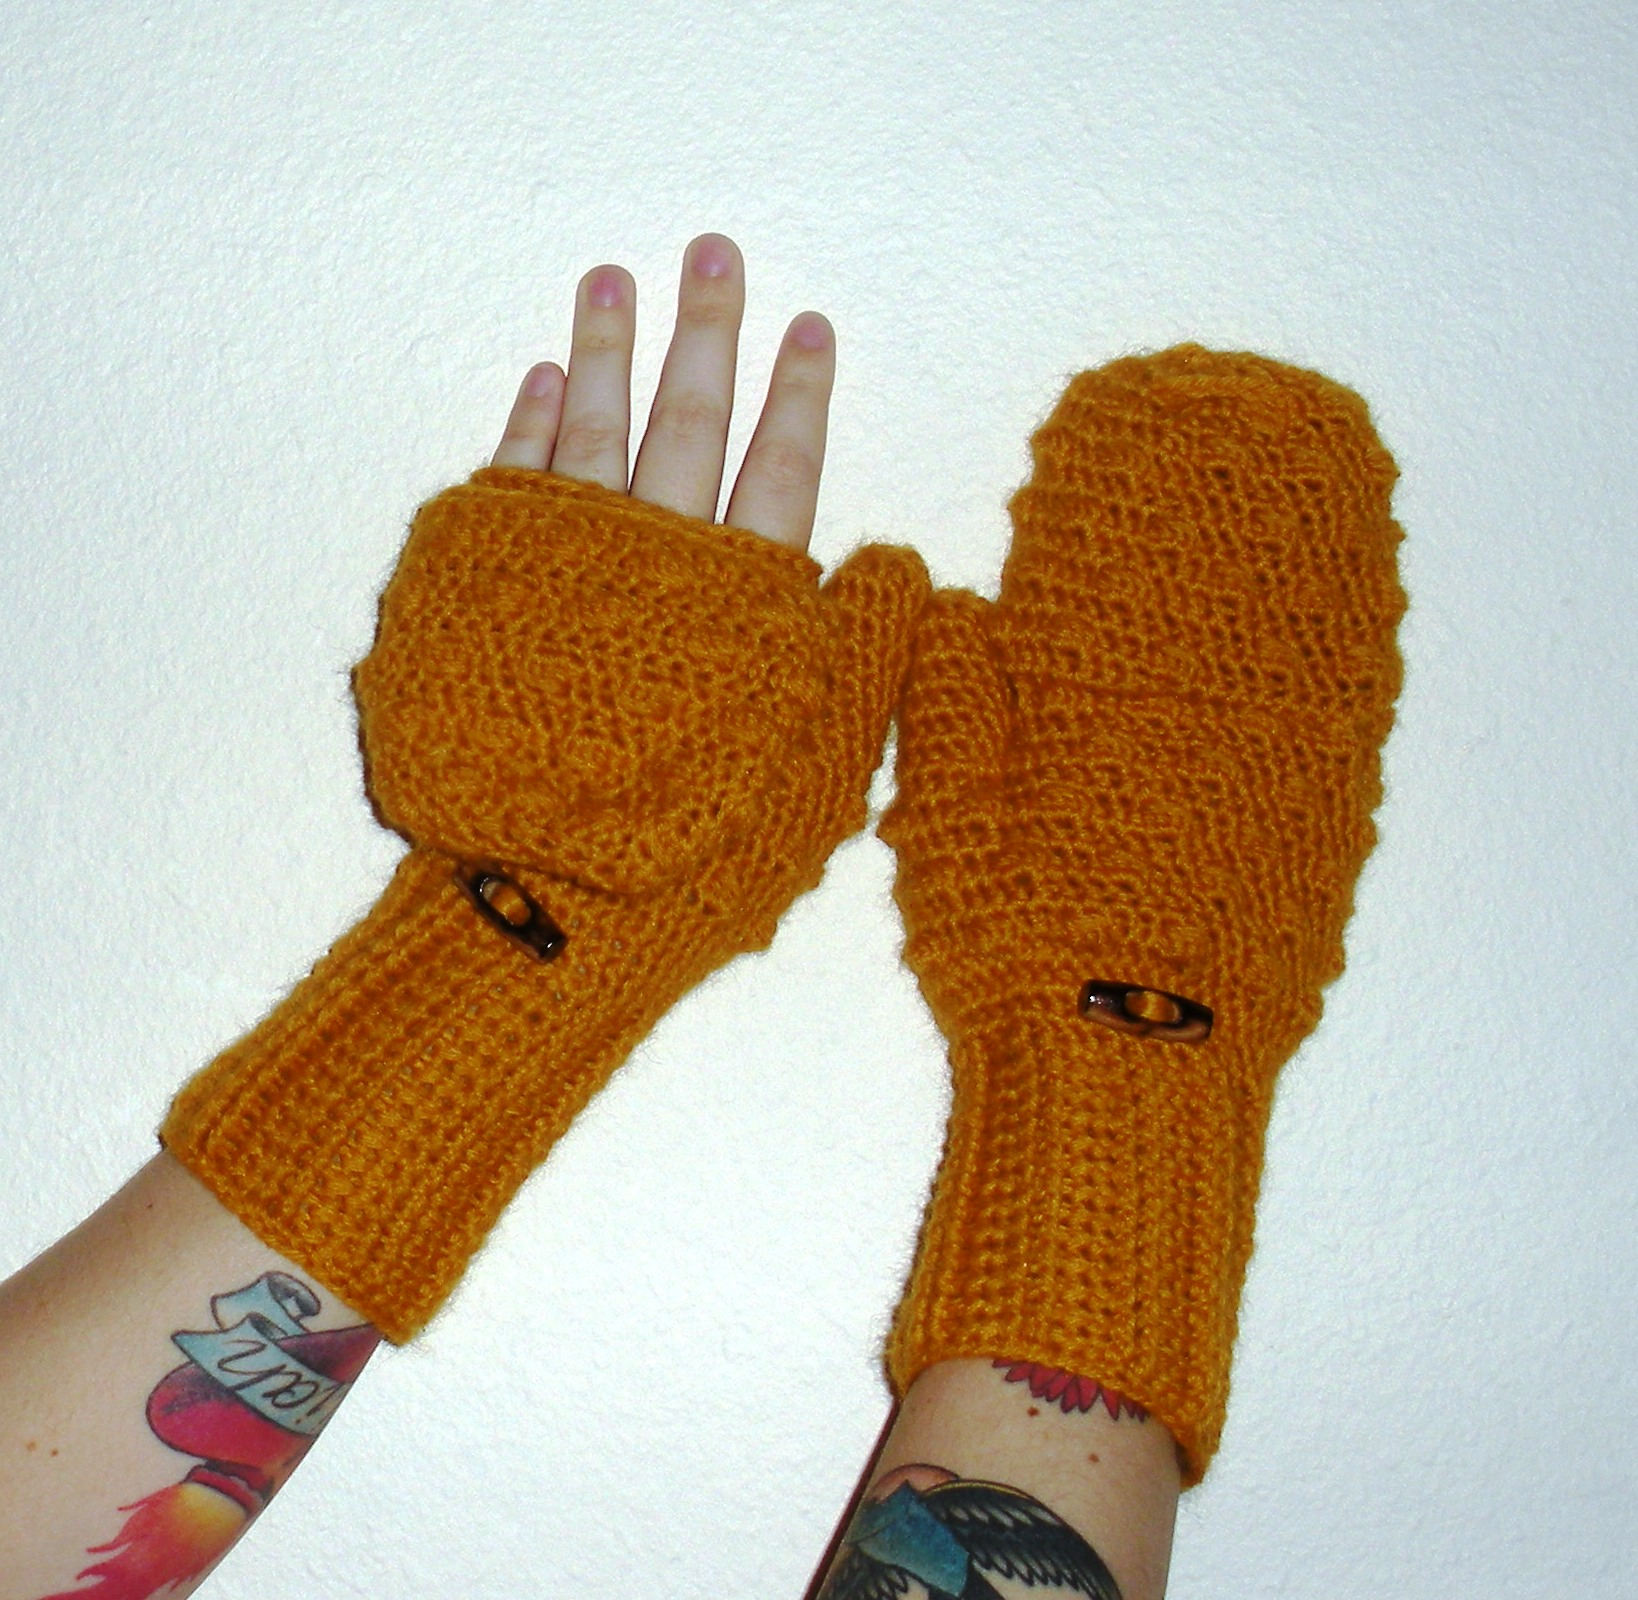 Fingerless gloves canada - Convertible Crochet Fingerless Glove Mittens In Mustard Yellow Wool Blend Yarn Ready To Ship